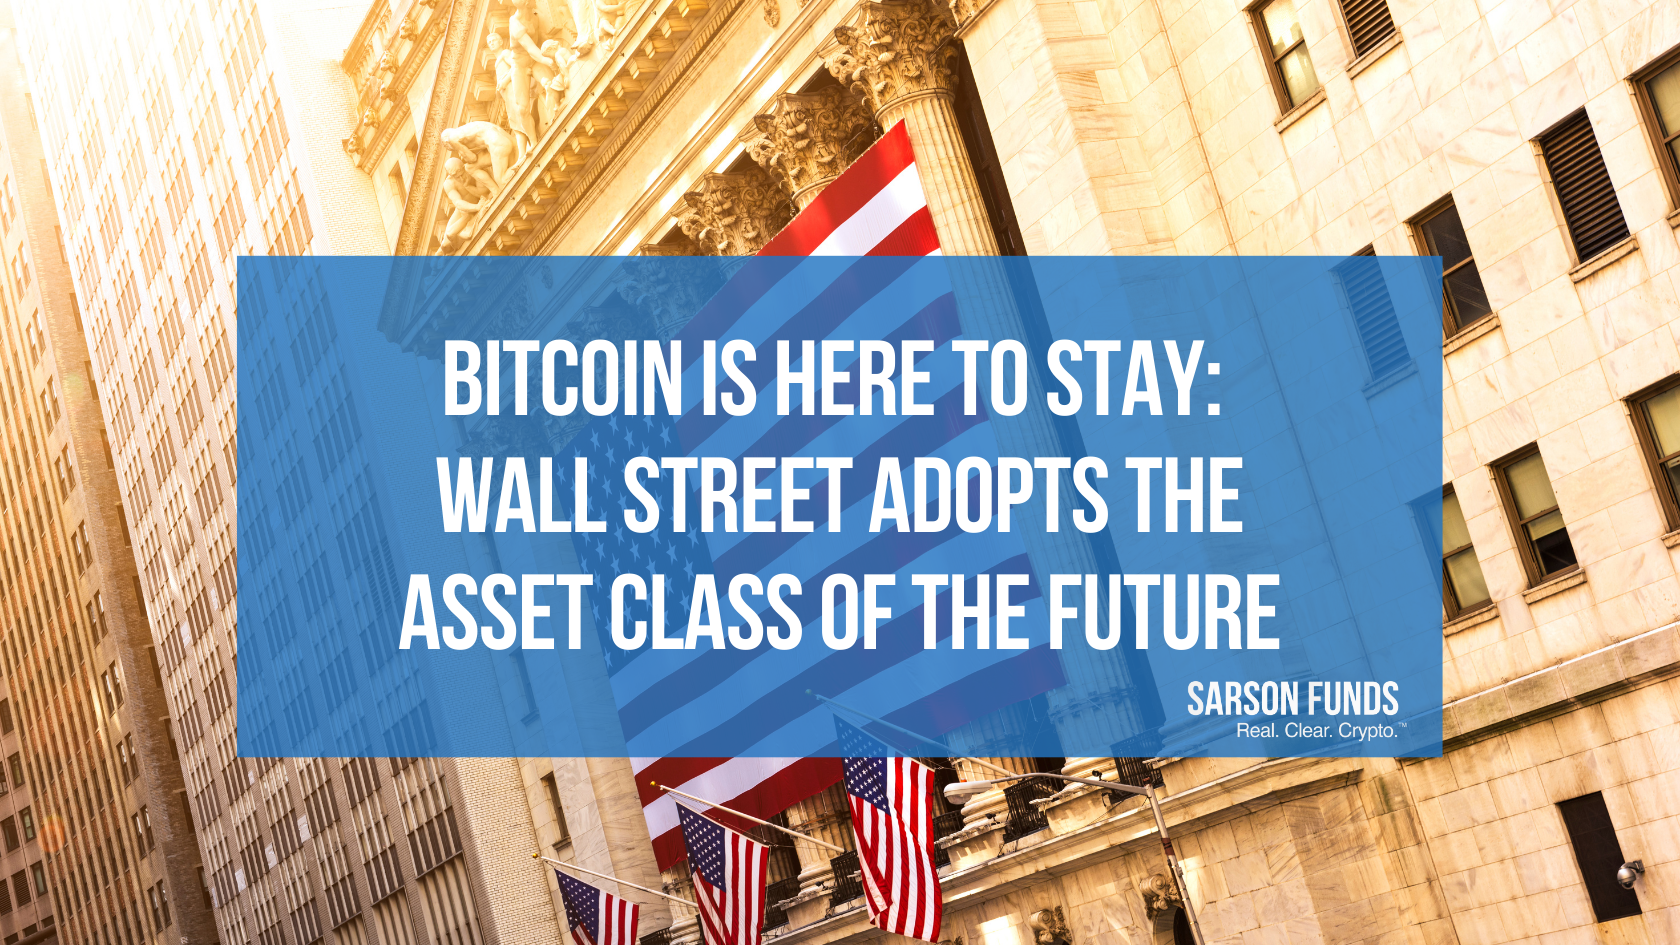 Wall Street Adopts Bitcoin Cryptocurrency Financial Advisors